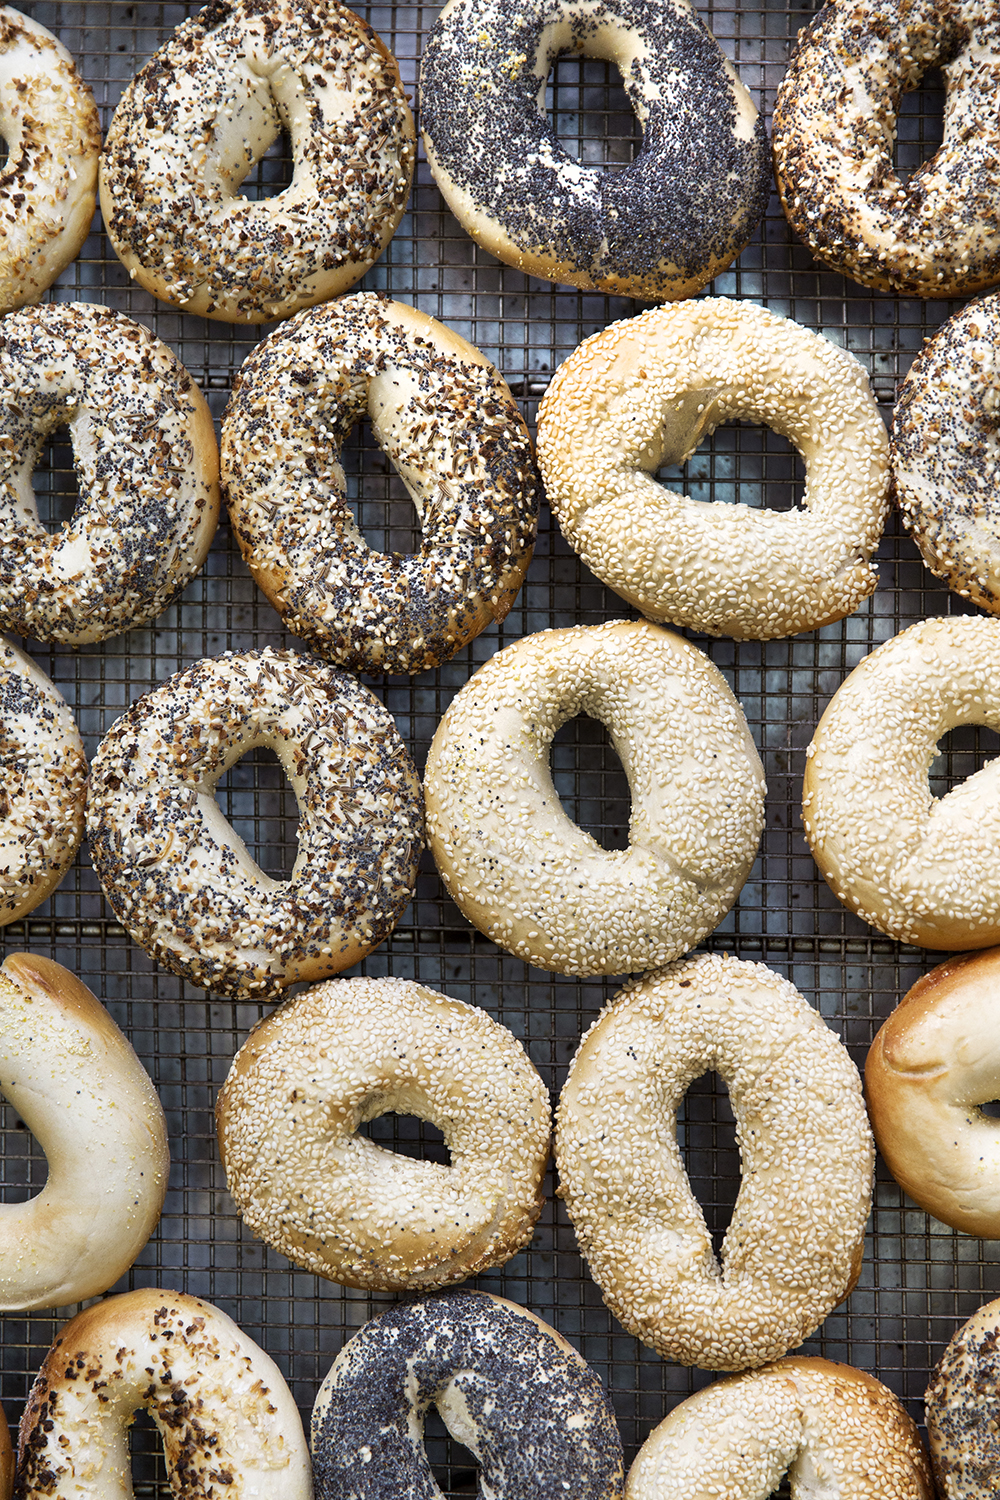 rstumpf_villagebagel